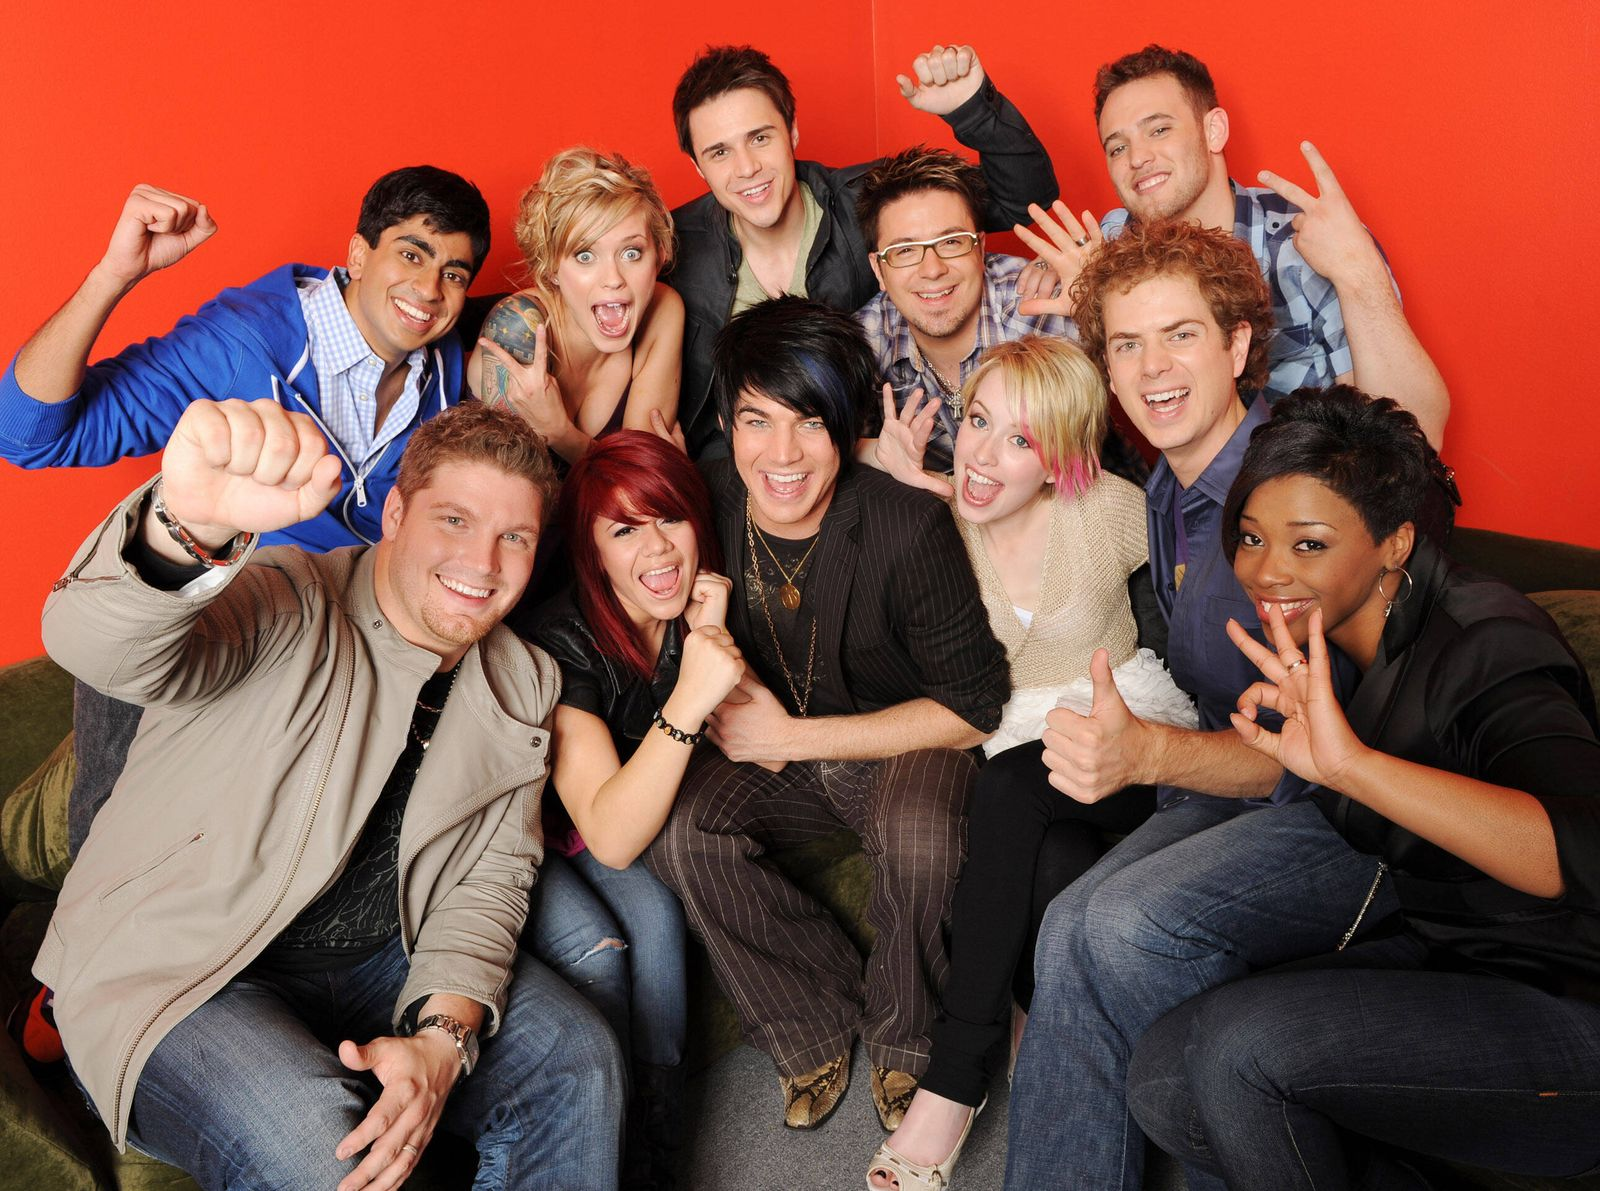 AMERICAN IDOL 8, (clockwise from bottom right): Lil Rounds, Scott MacIntyre, Alexis Grace, Adam Lambert, Allison Iraheta